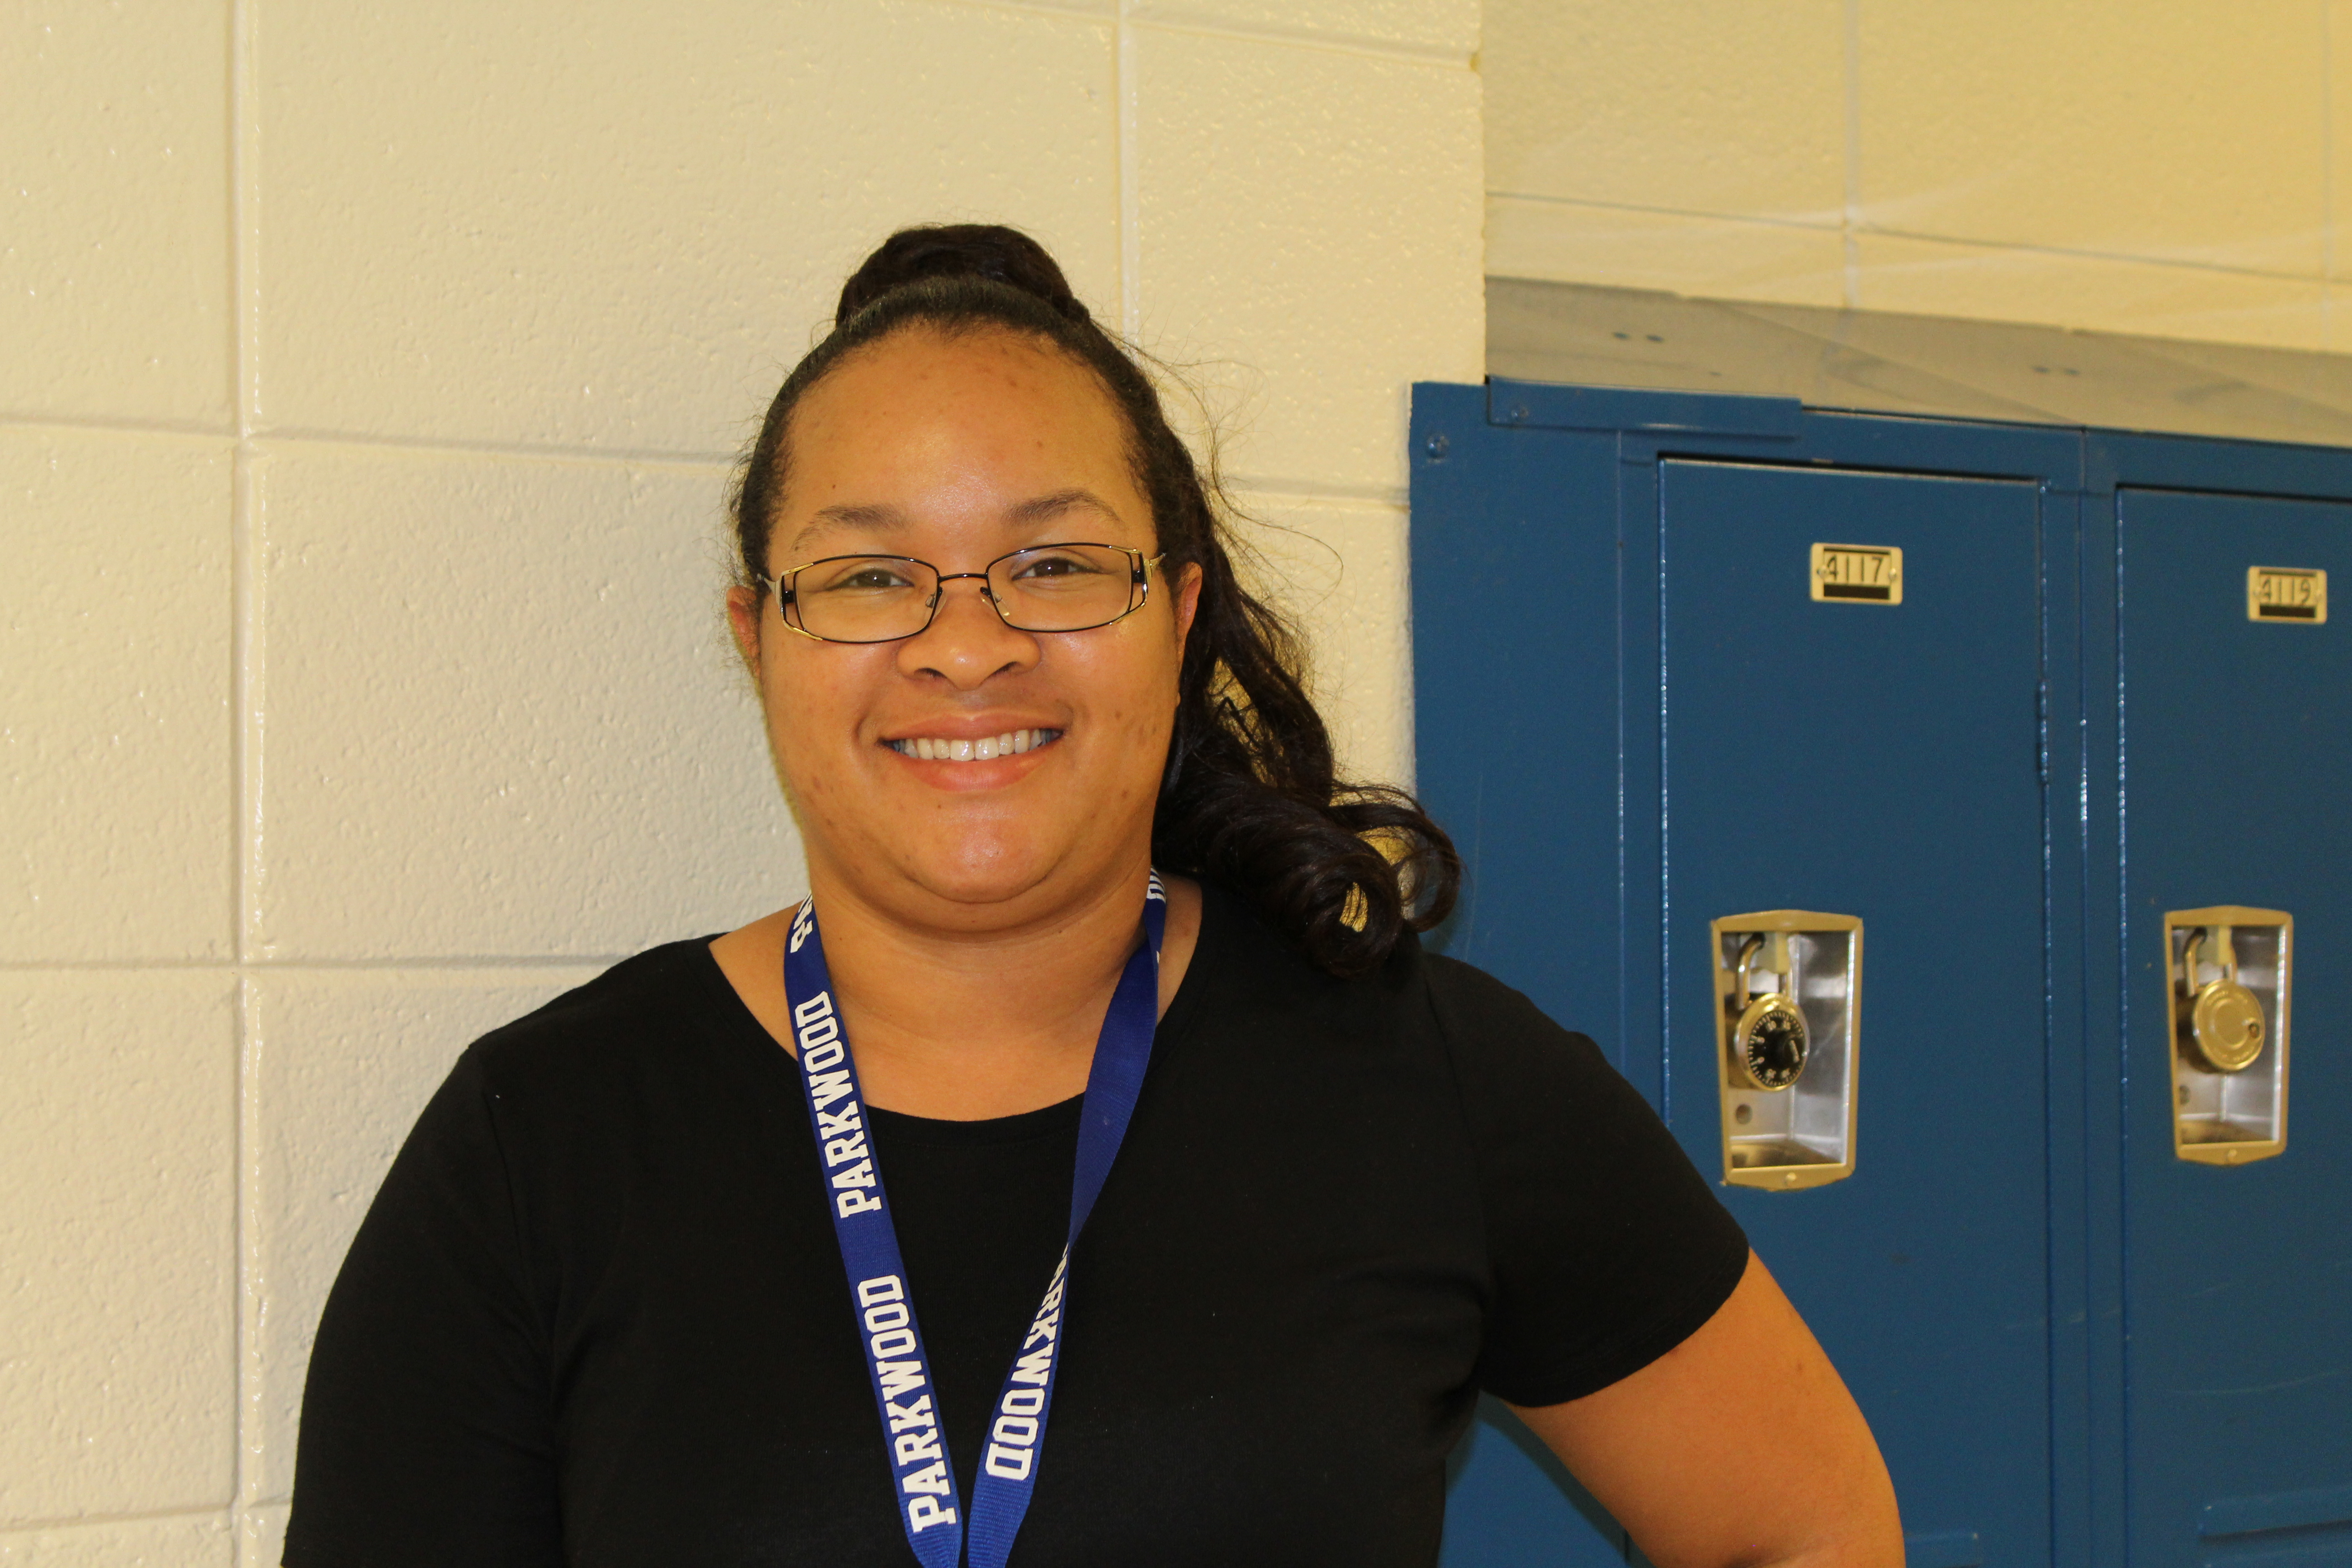 Meet Ms. McClendon, Instructional Assistant